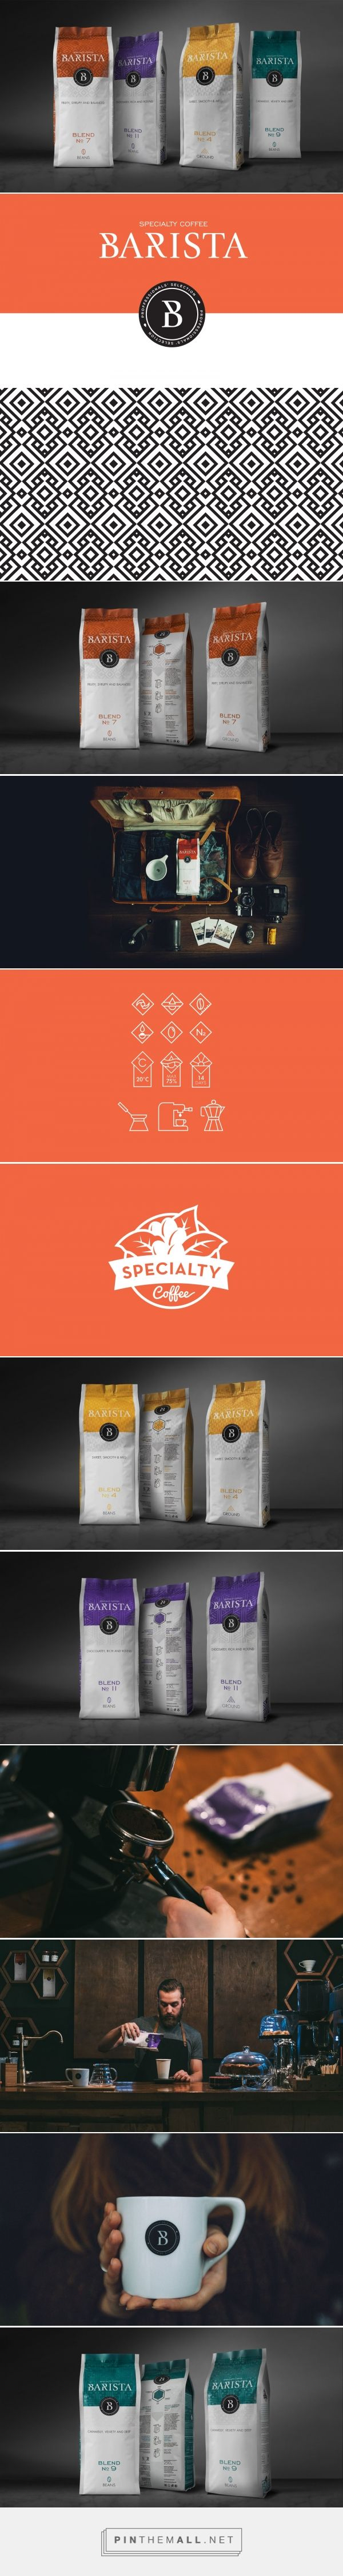 Barista Coffee packaging design by Skybox Design Agency (Russia) - http://www.packagingoftheworld.com/2016/08/barista-packaging-concept.html